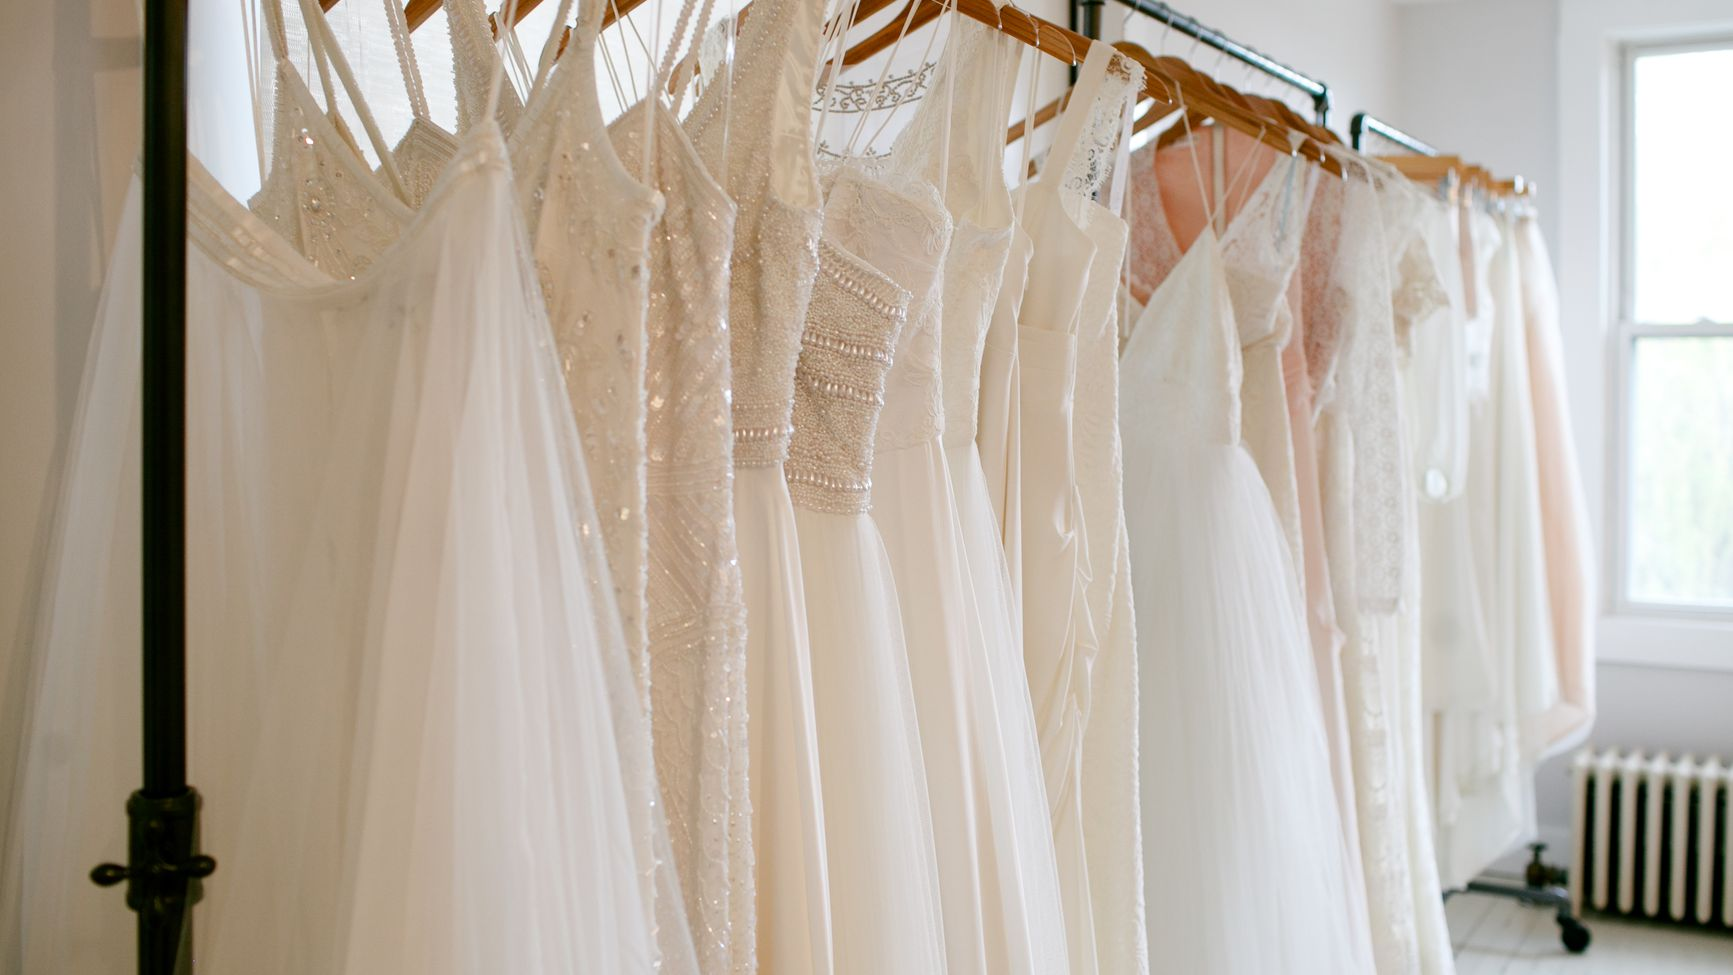 10 Tips About Wedding Dress Preservation All Brides Should Know